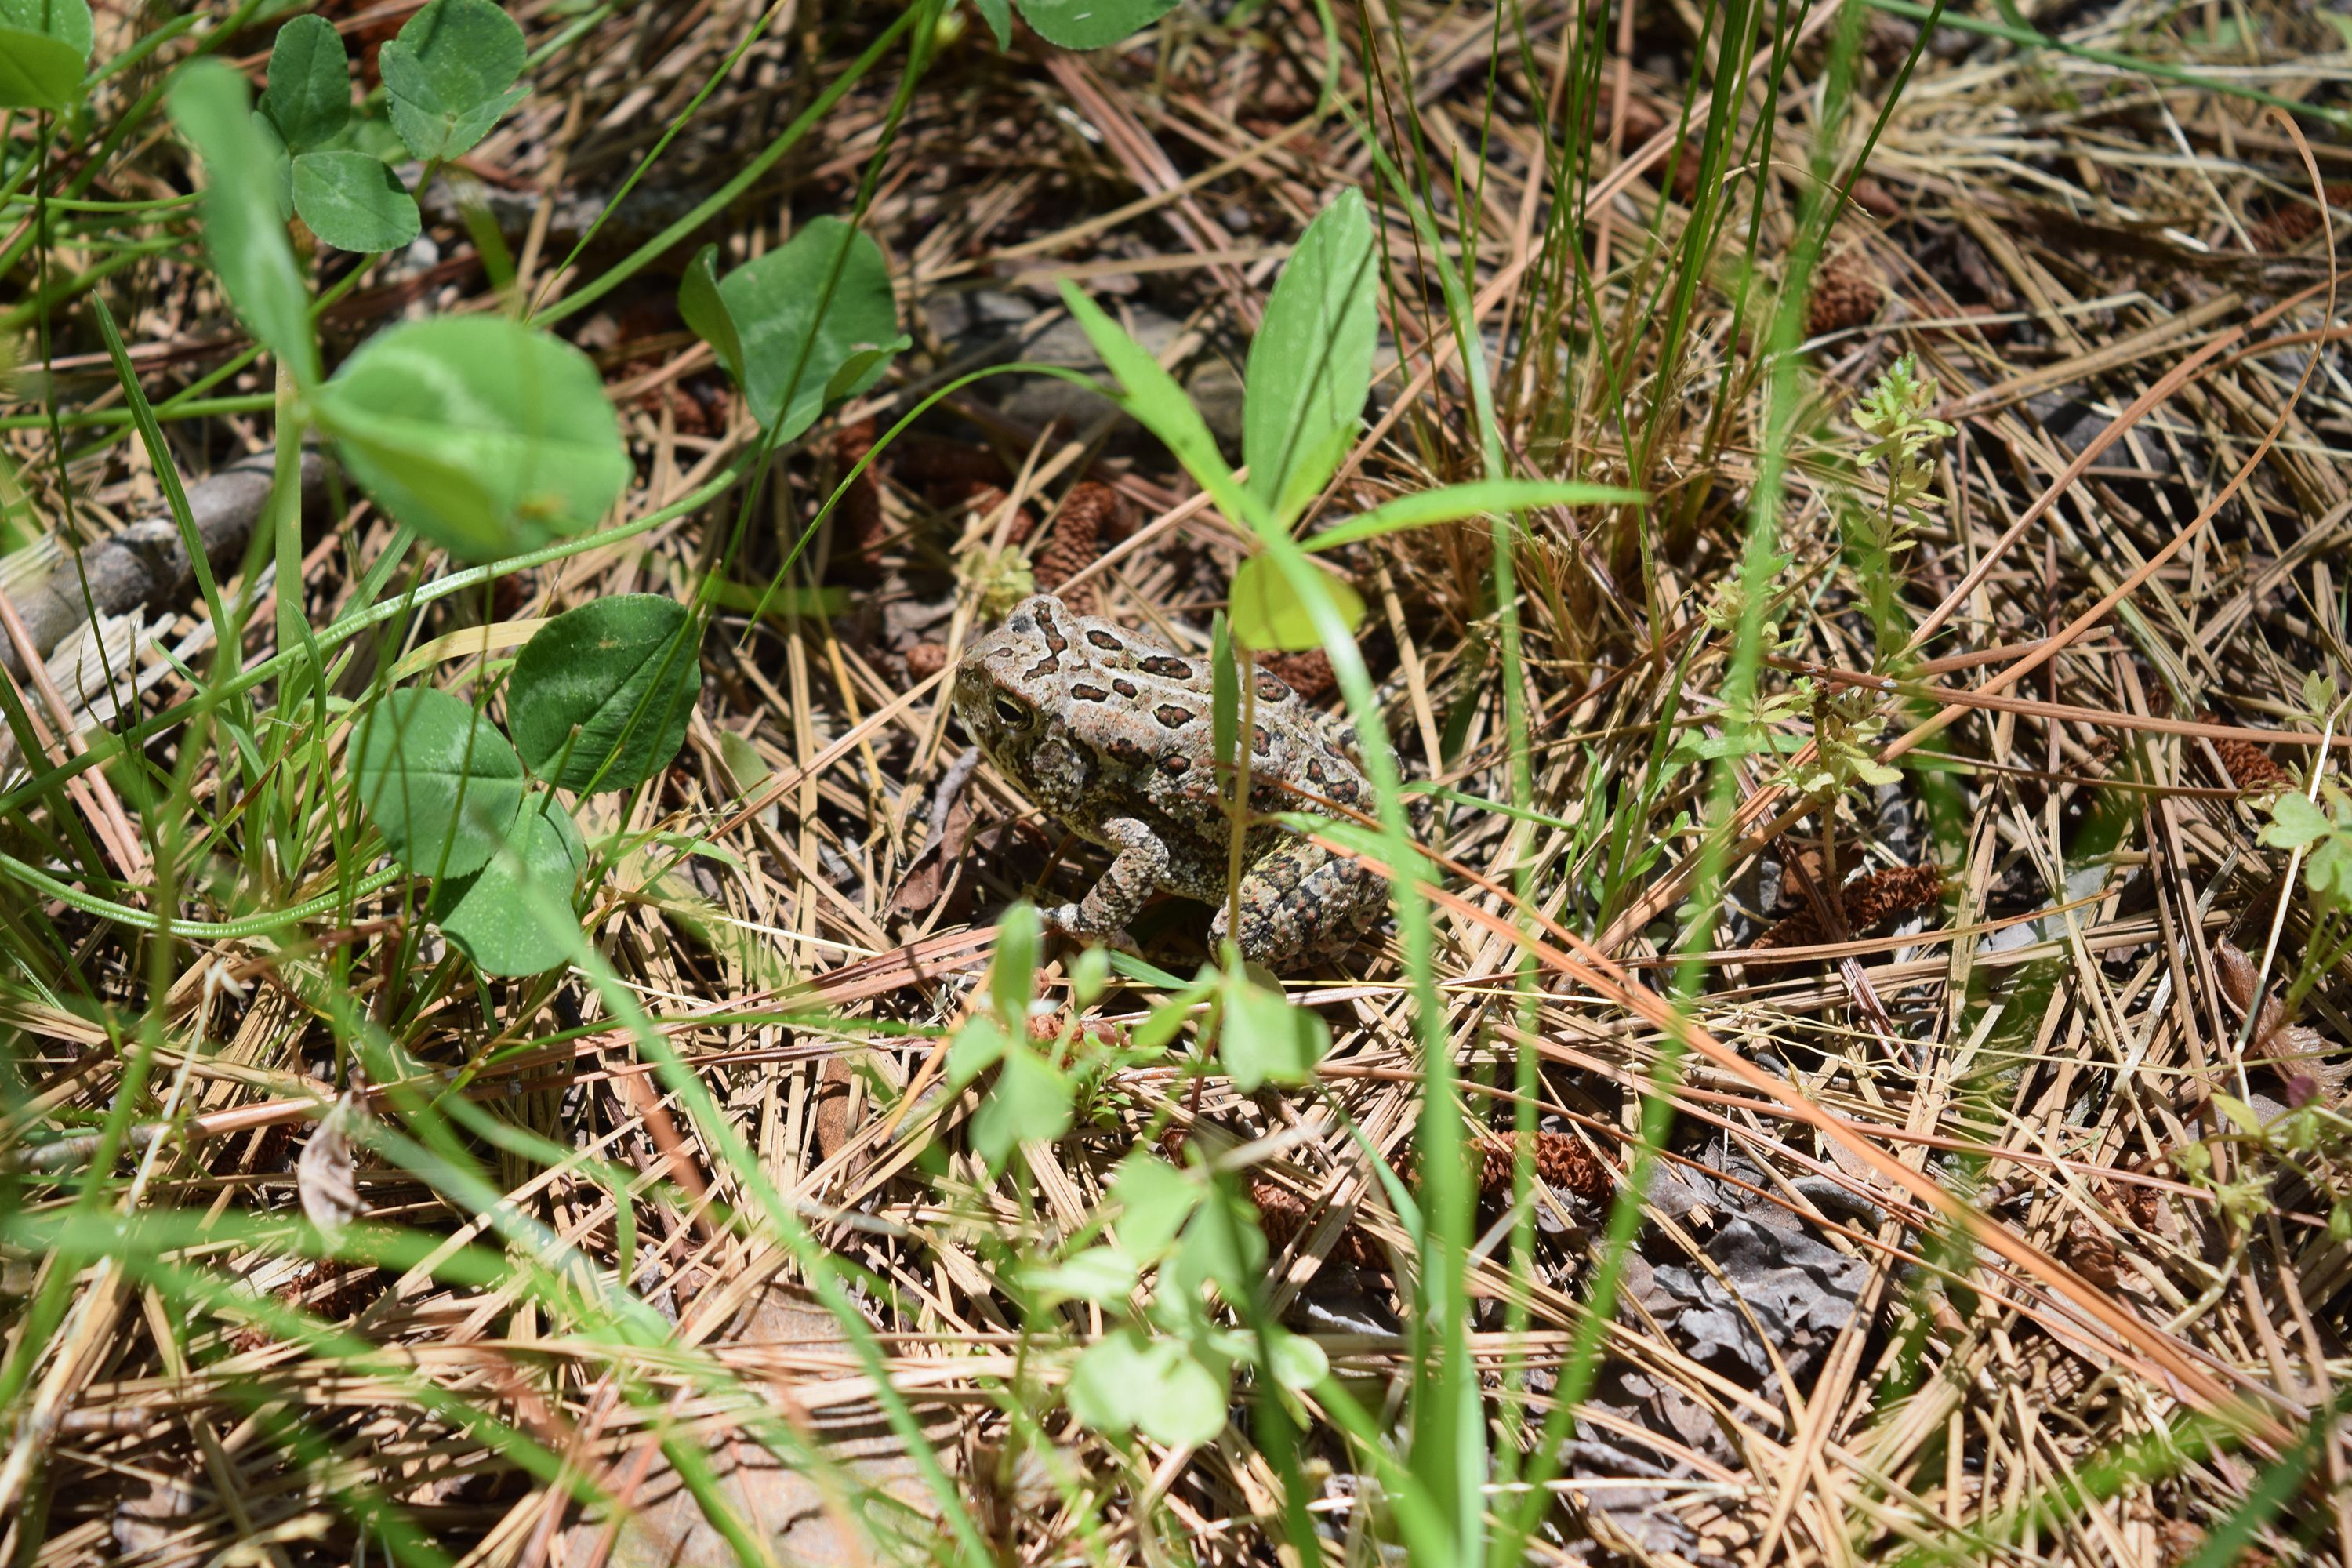 A small toad sits in the middle of a pile of pine needles. The toad is light brown with large dark brown spots ringed with white running along its back.